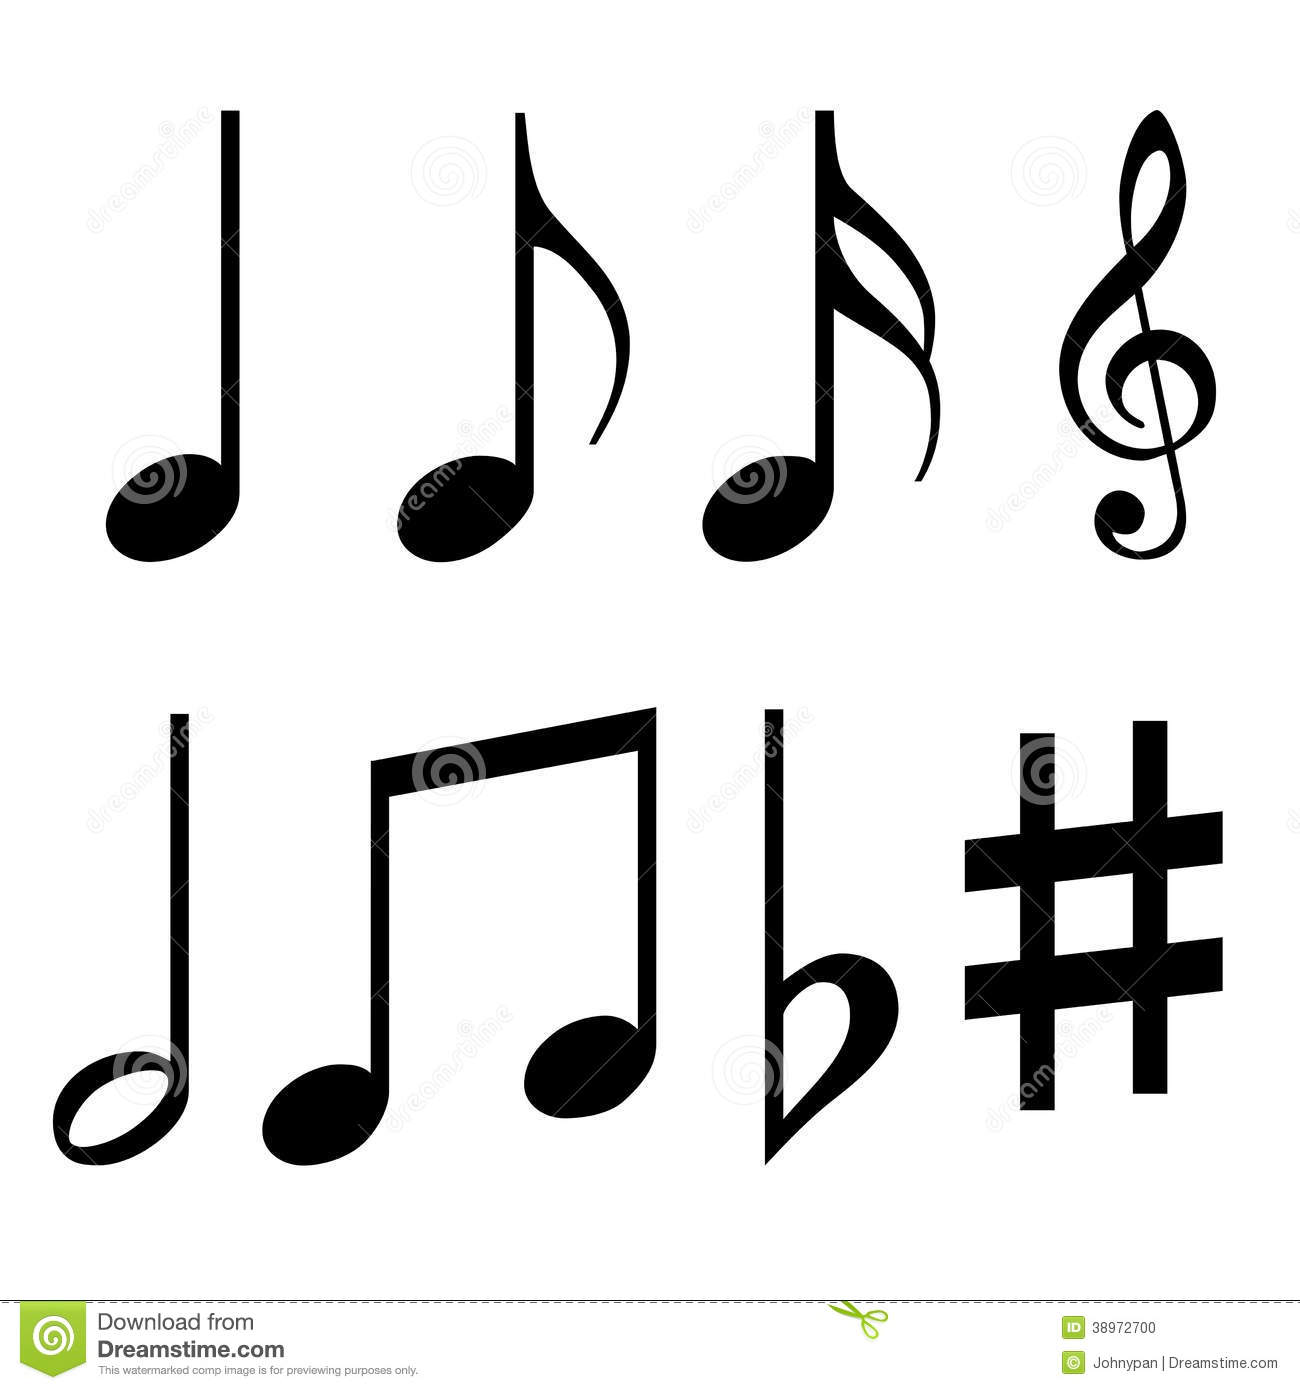 music notes symbols stock illustration image 38972700